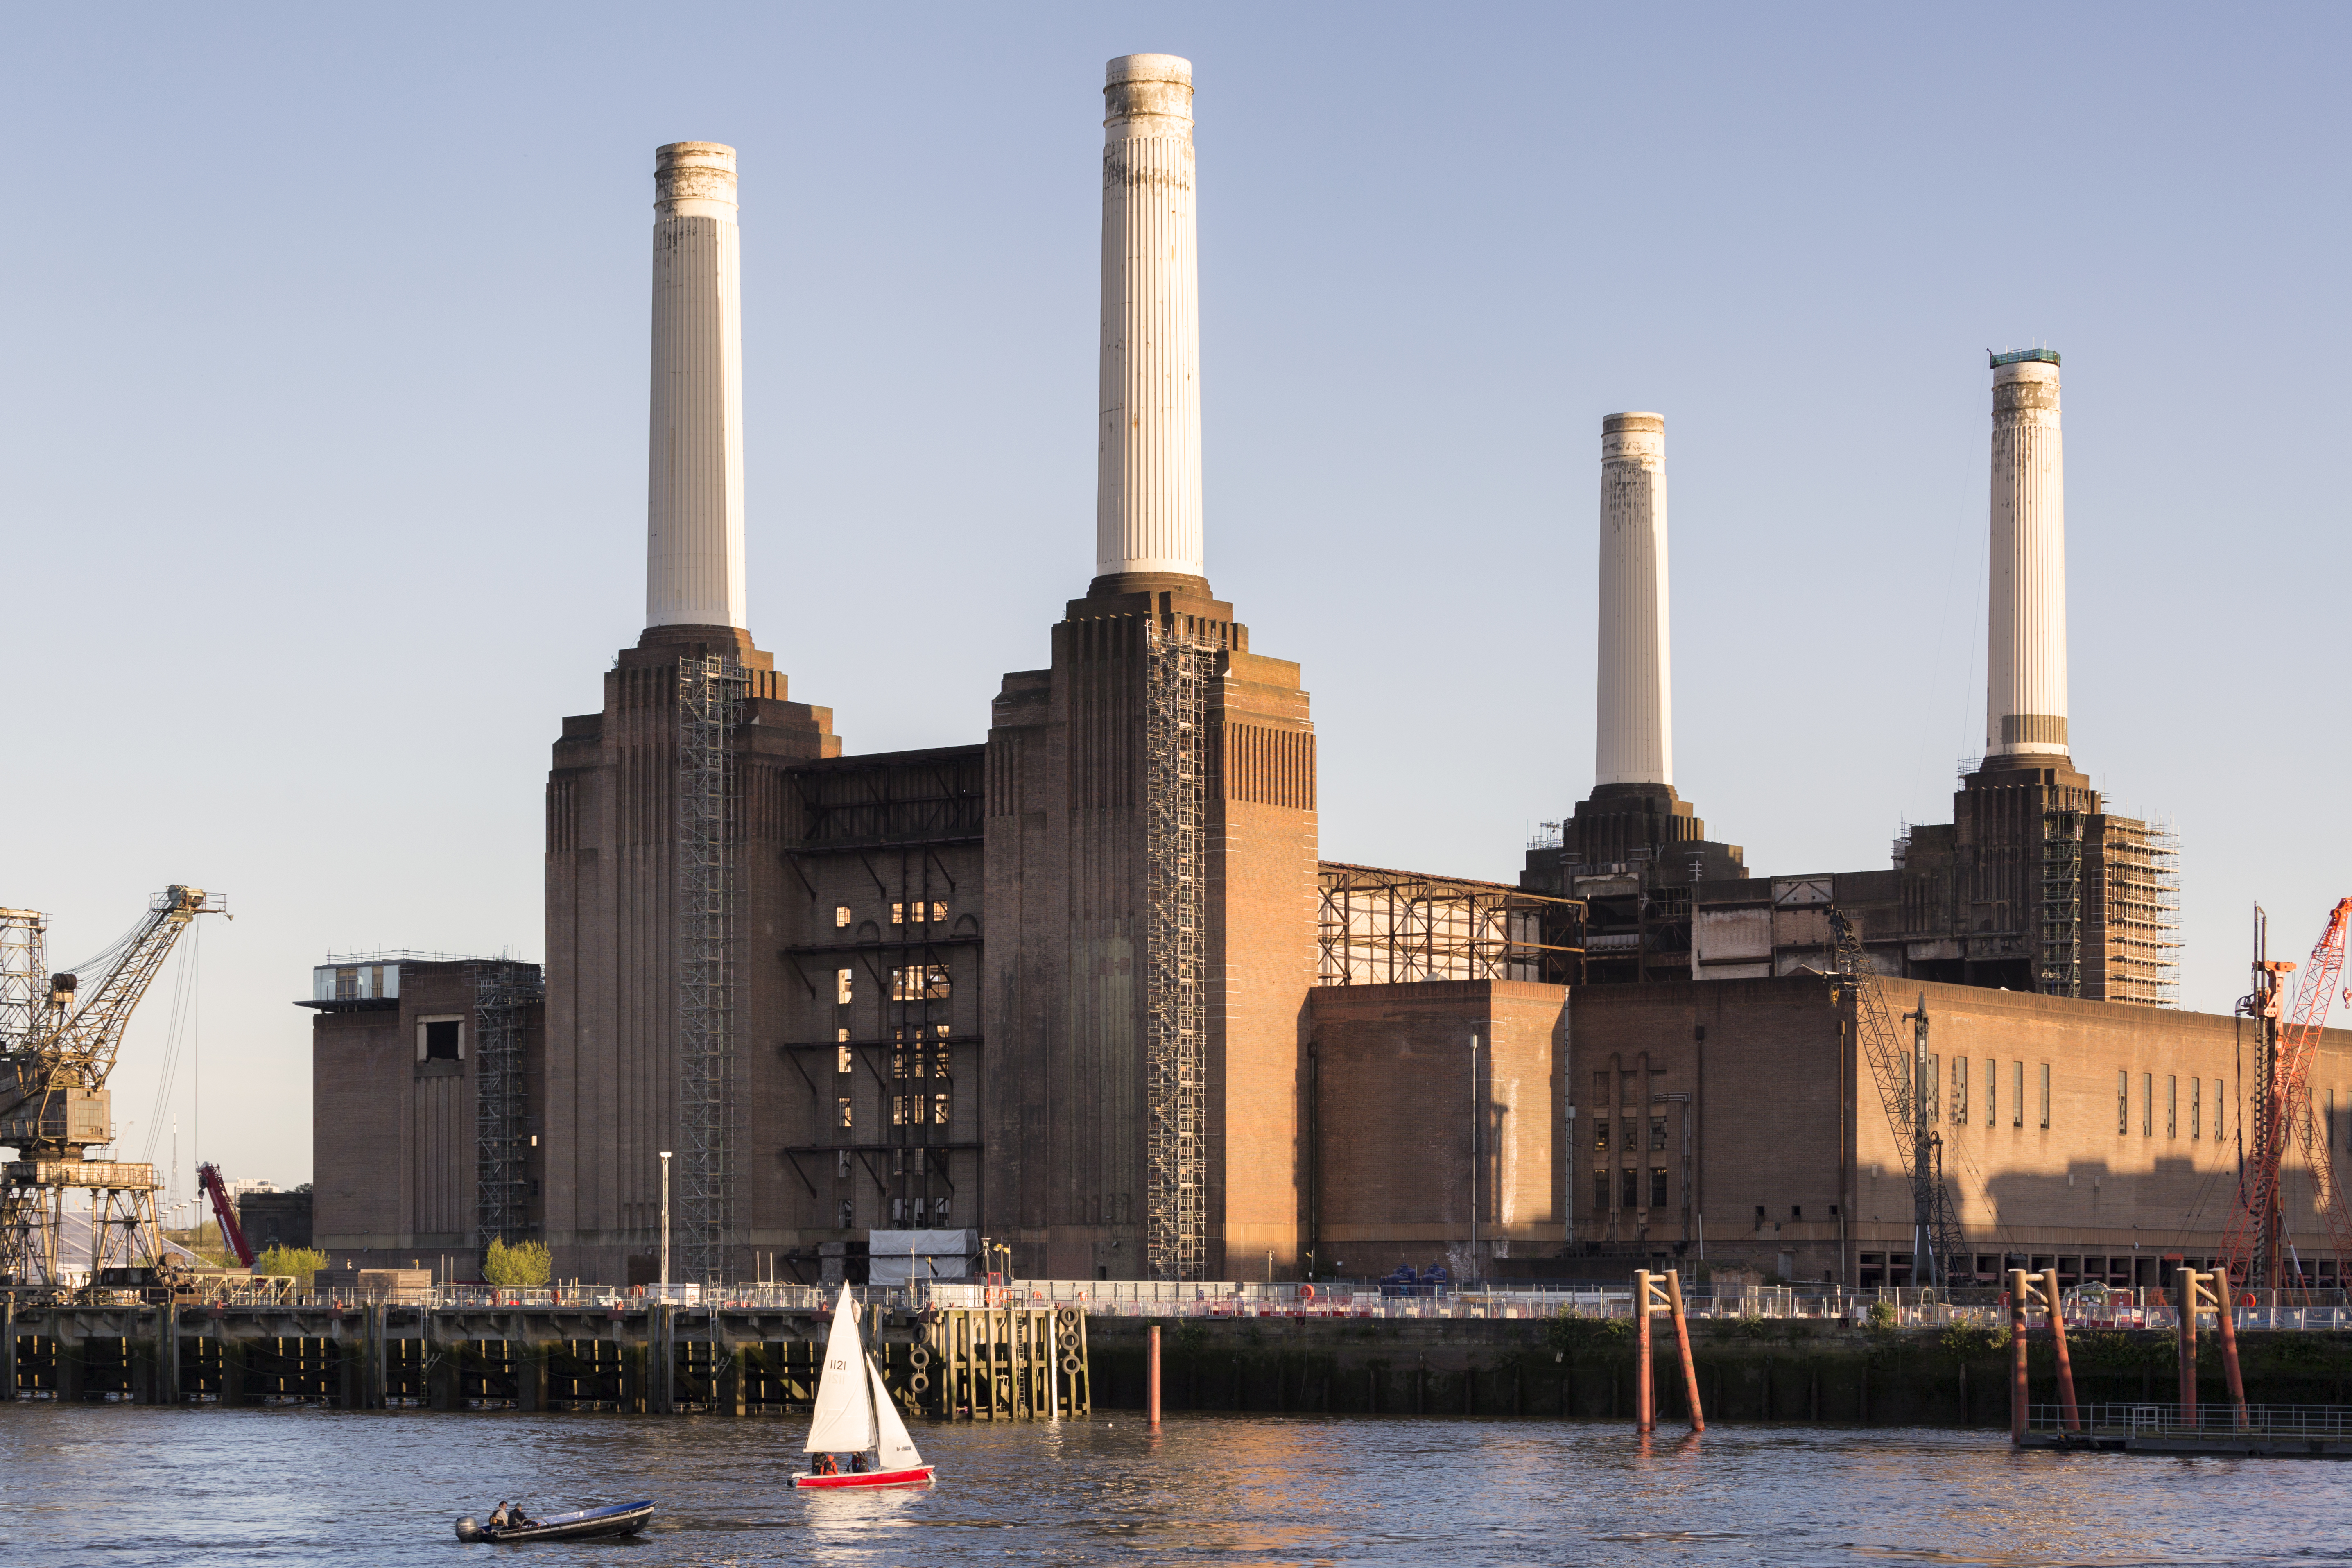 One of the biggest London Landmarks, the Battersea Power Station, viewed from across the Thames river.